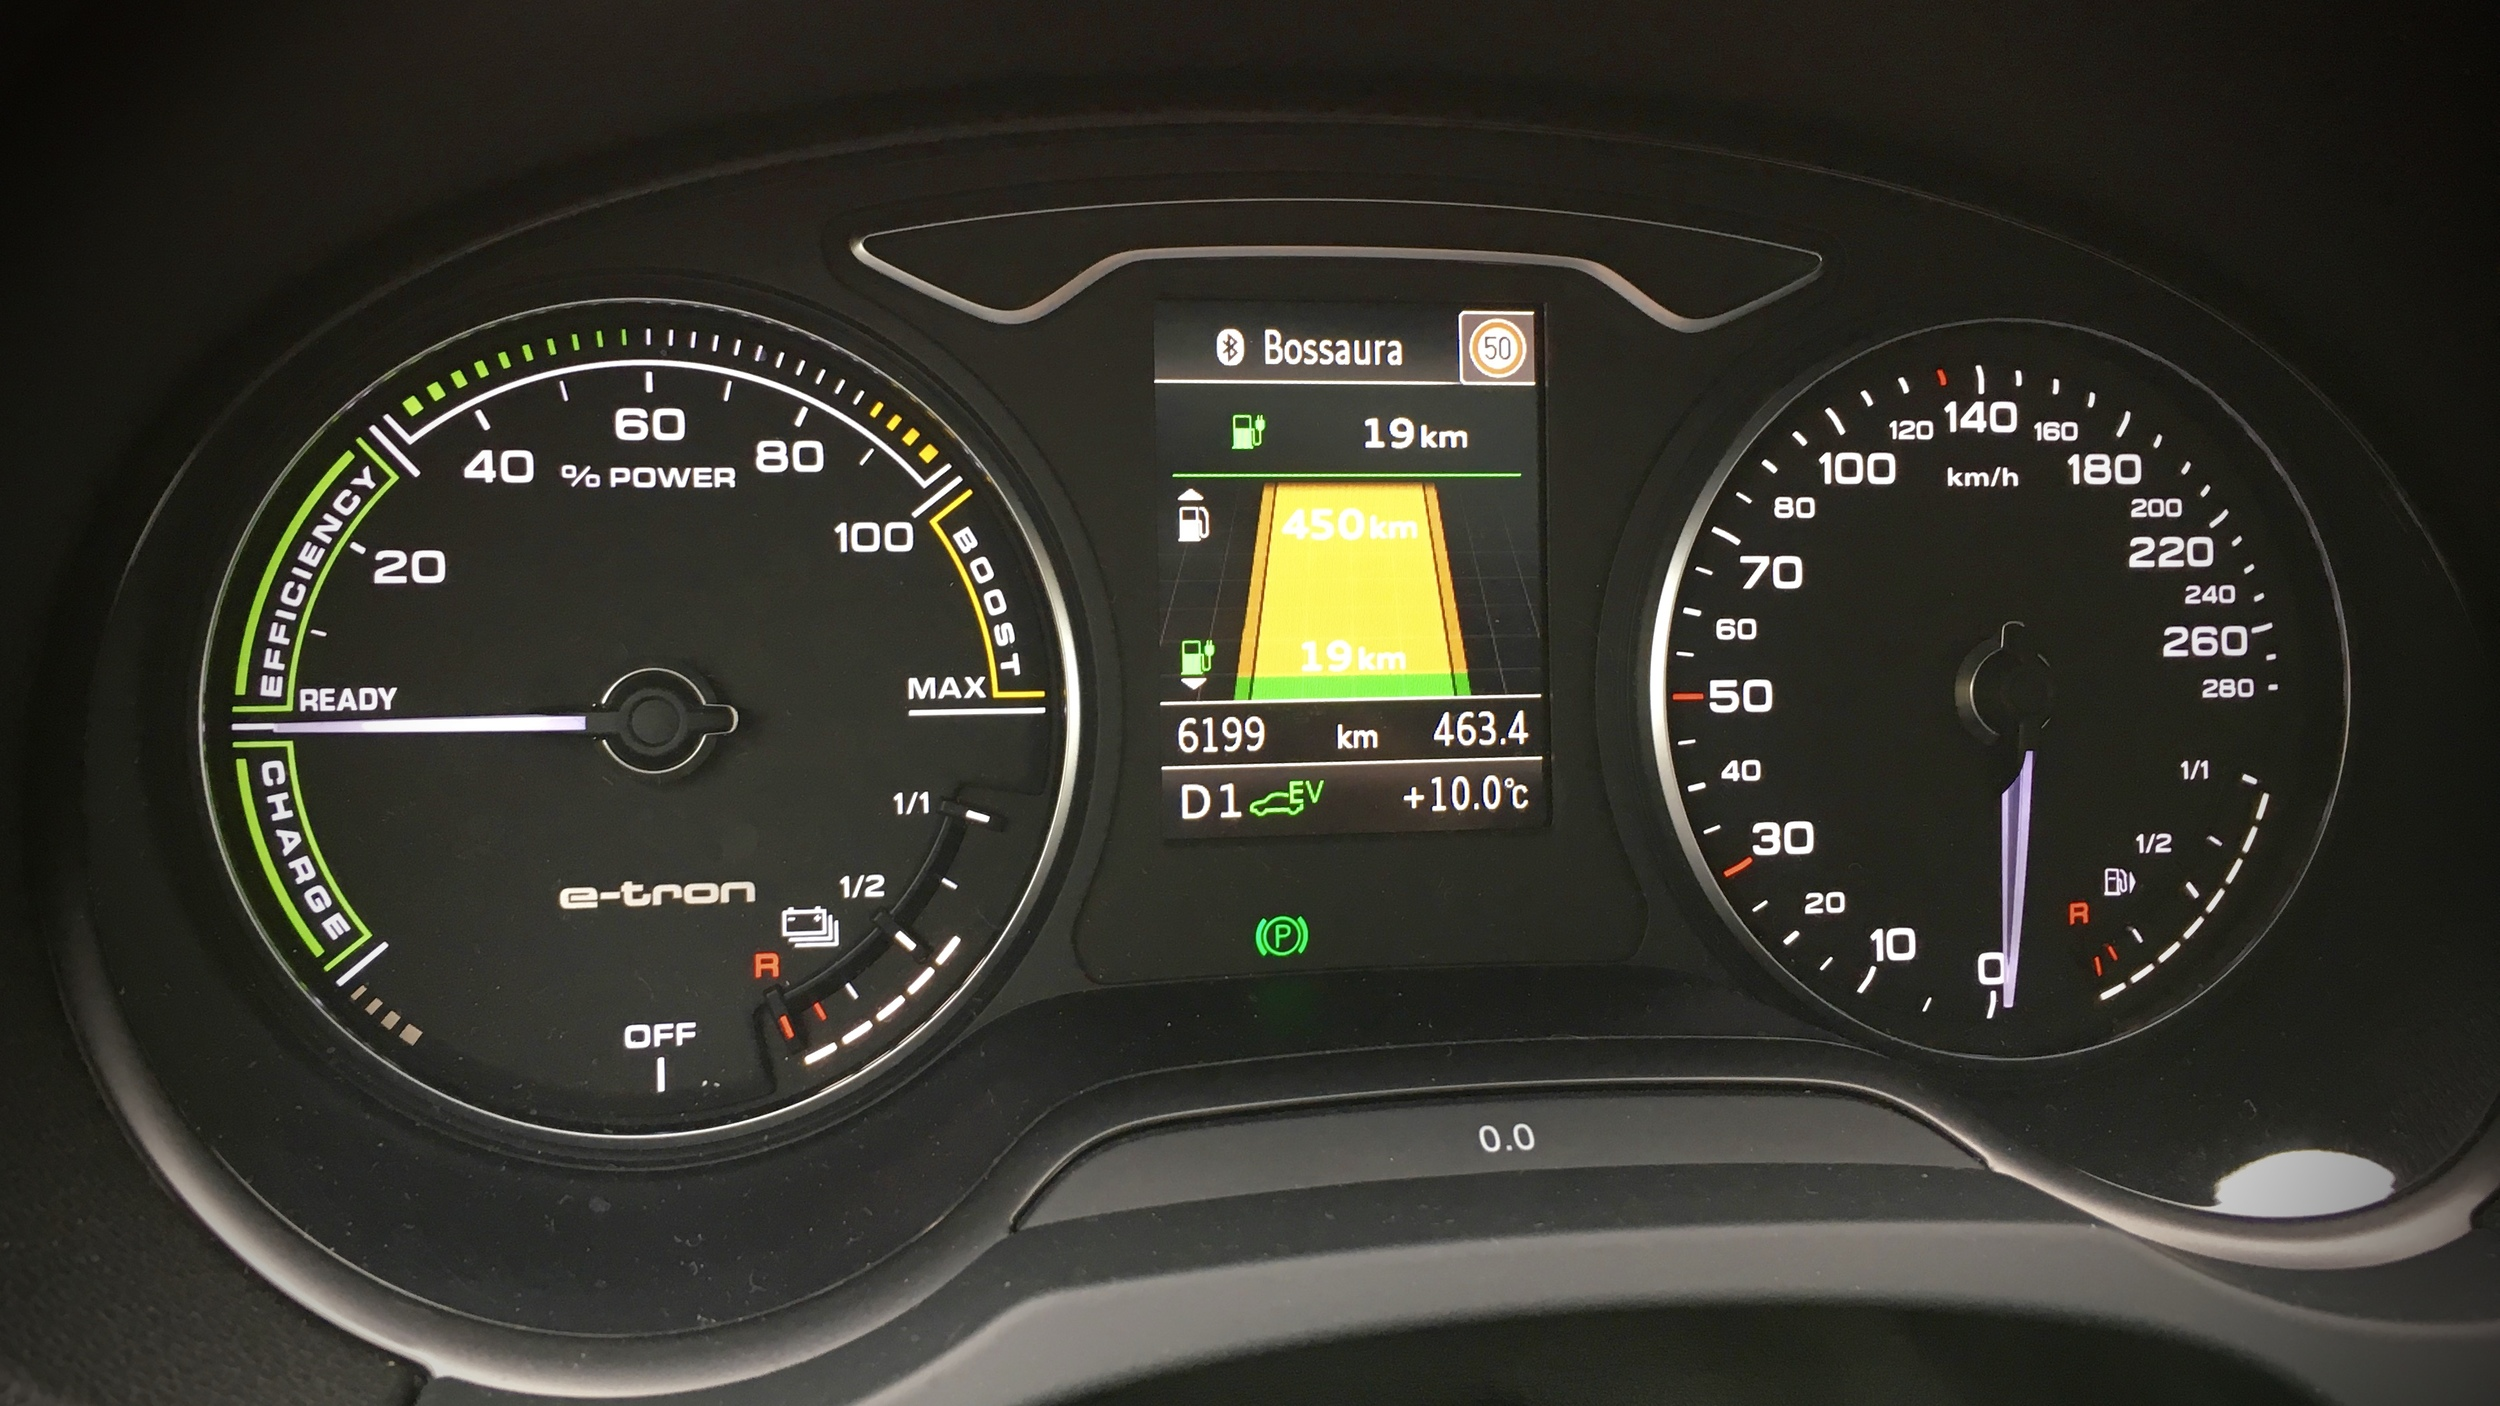 Fancy e-tron specific instrument cluster showing combined ranges